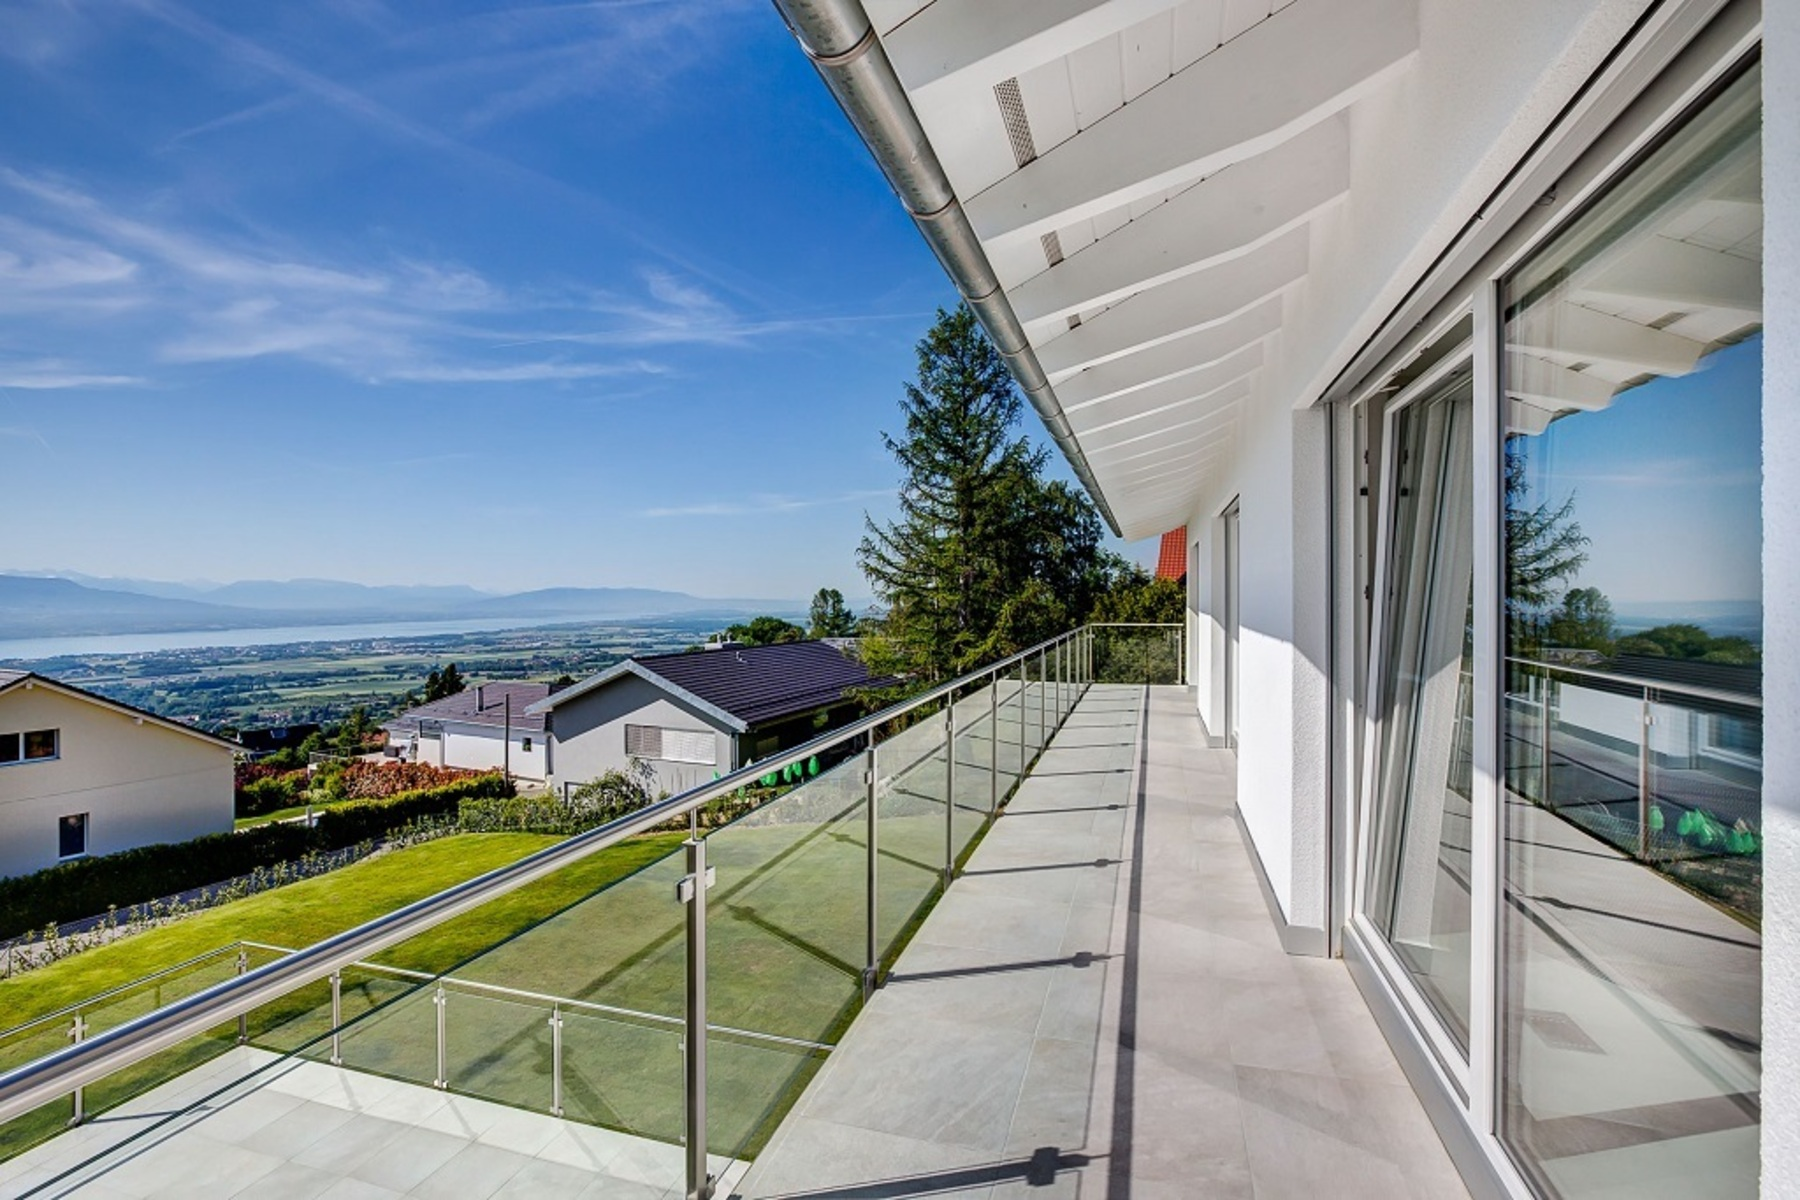 Property For Sale at New, modern villa with panoramic view over Lake Geneva and the Alps